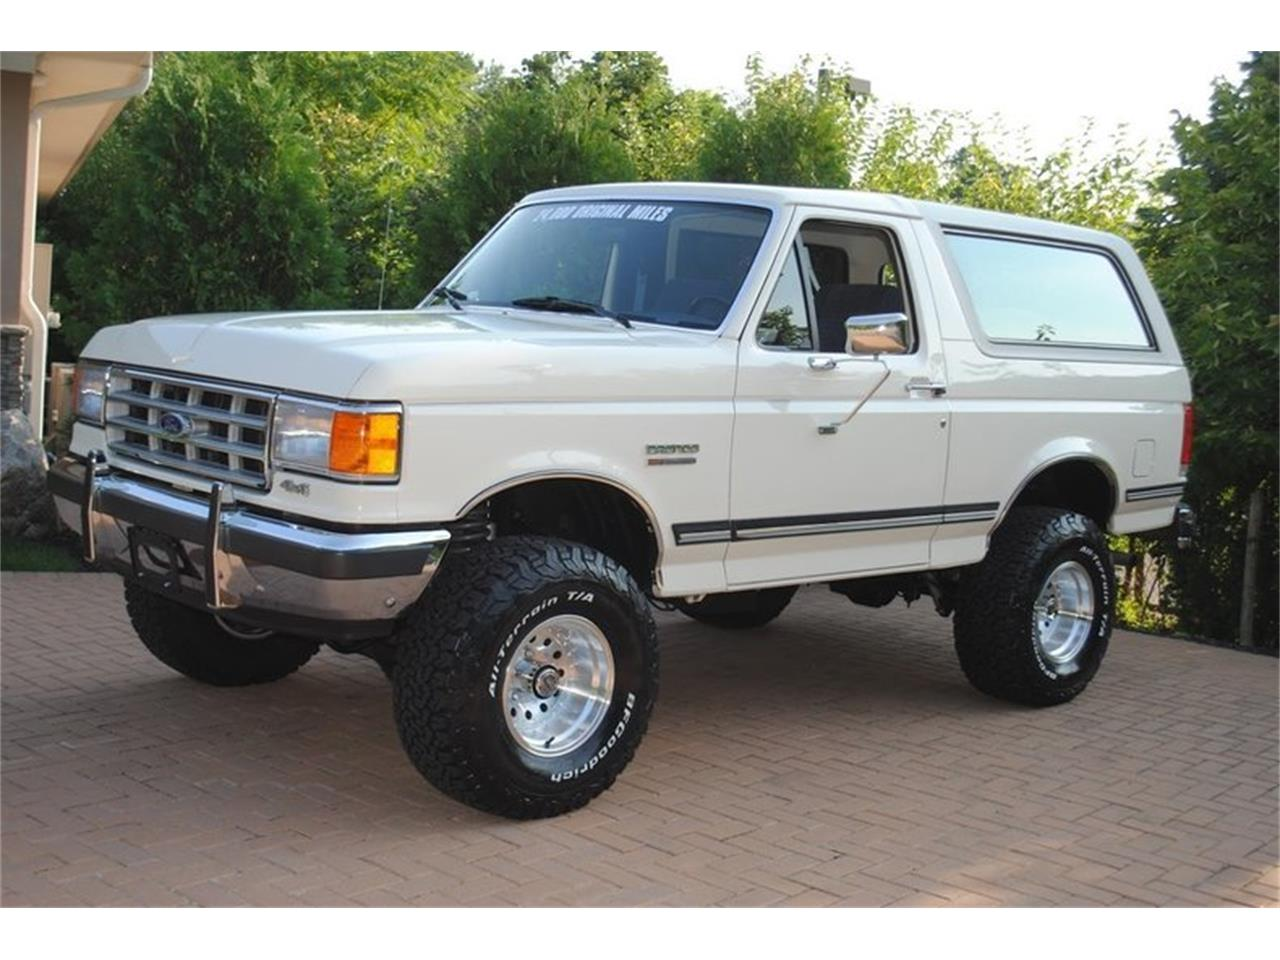 Large picture of 88 bronco o8oy